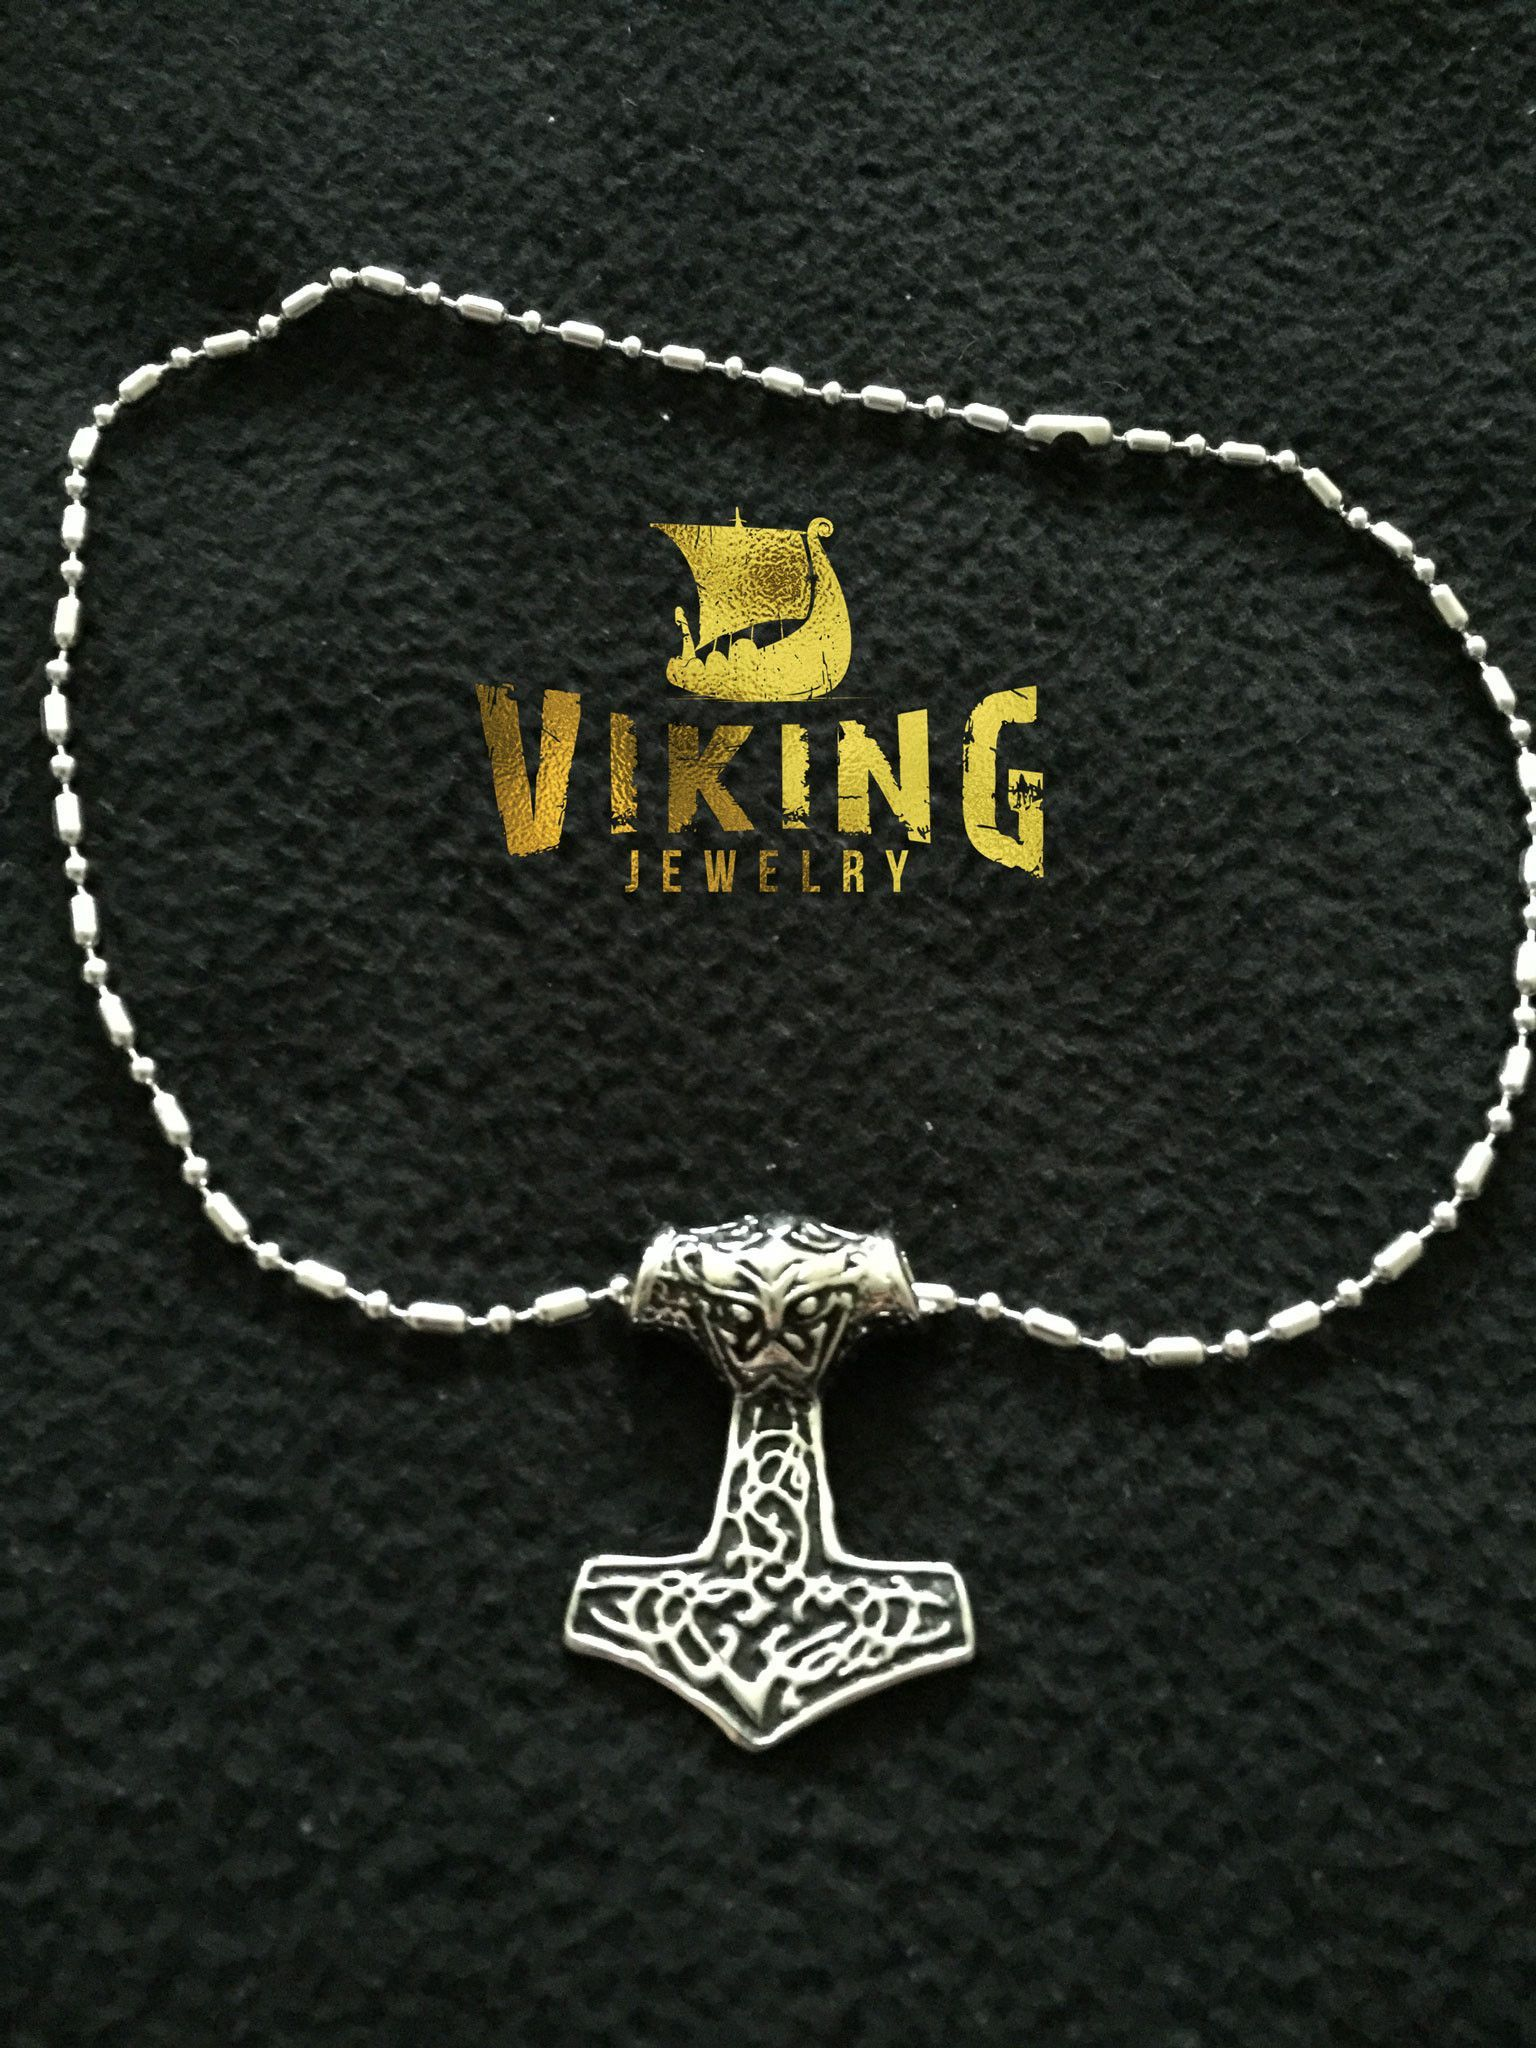 This Modern Viking Thor Hammer Necklace size is 34*24*9 mm   Comes